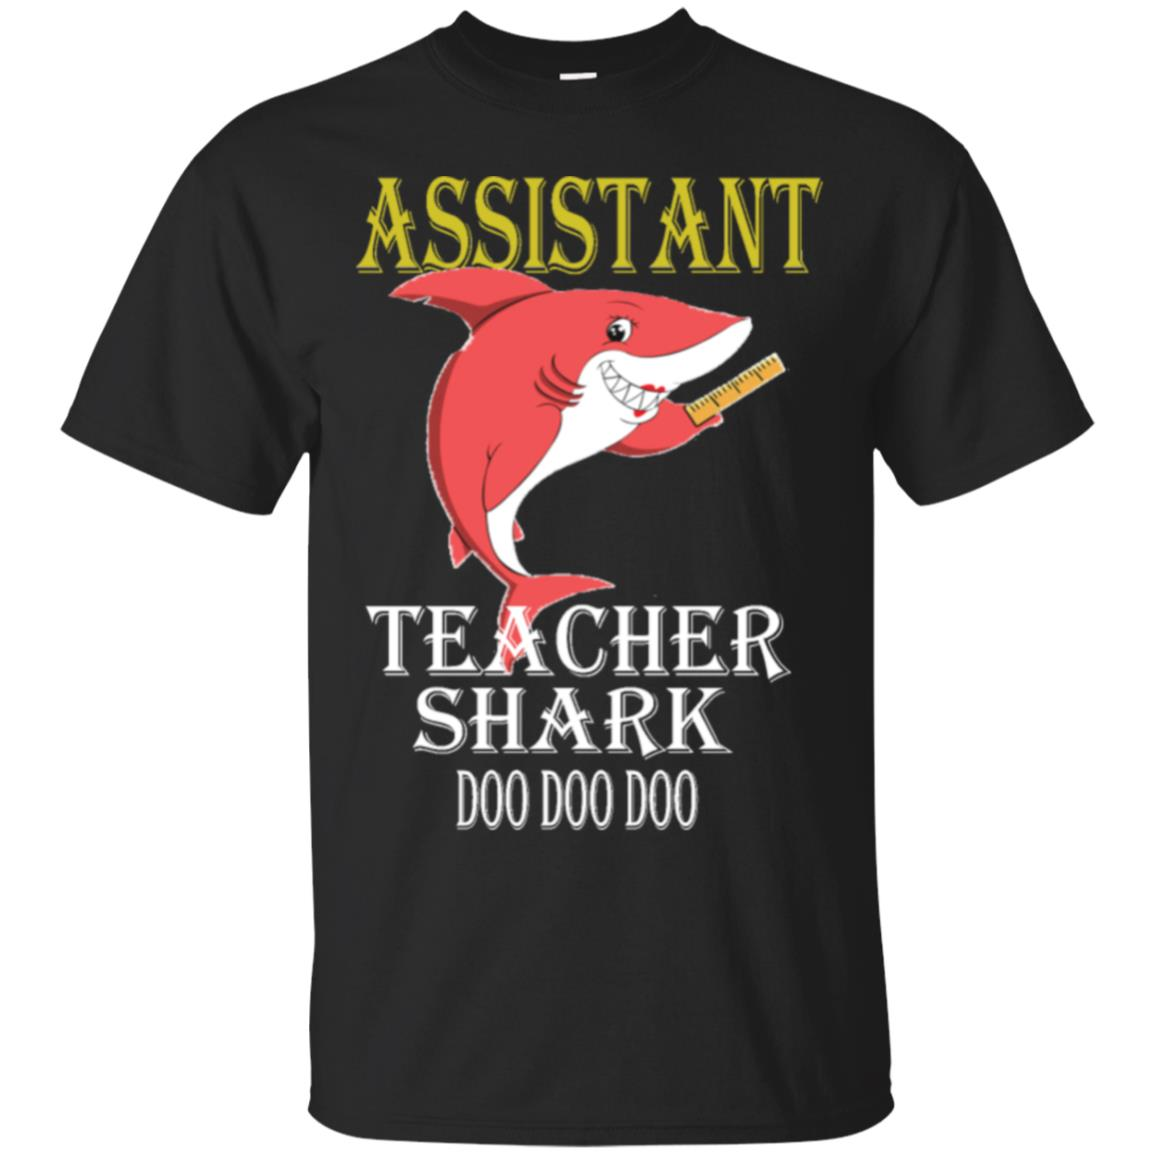 Assistant Teacher Shark Doo Doo Doo Men T-shirt